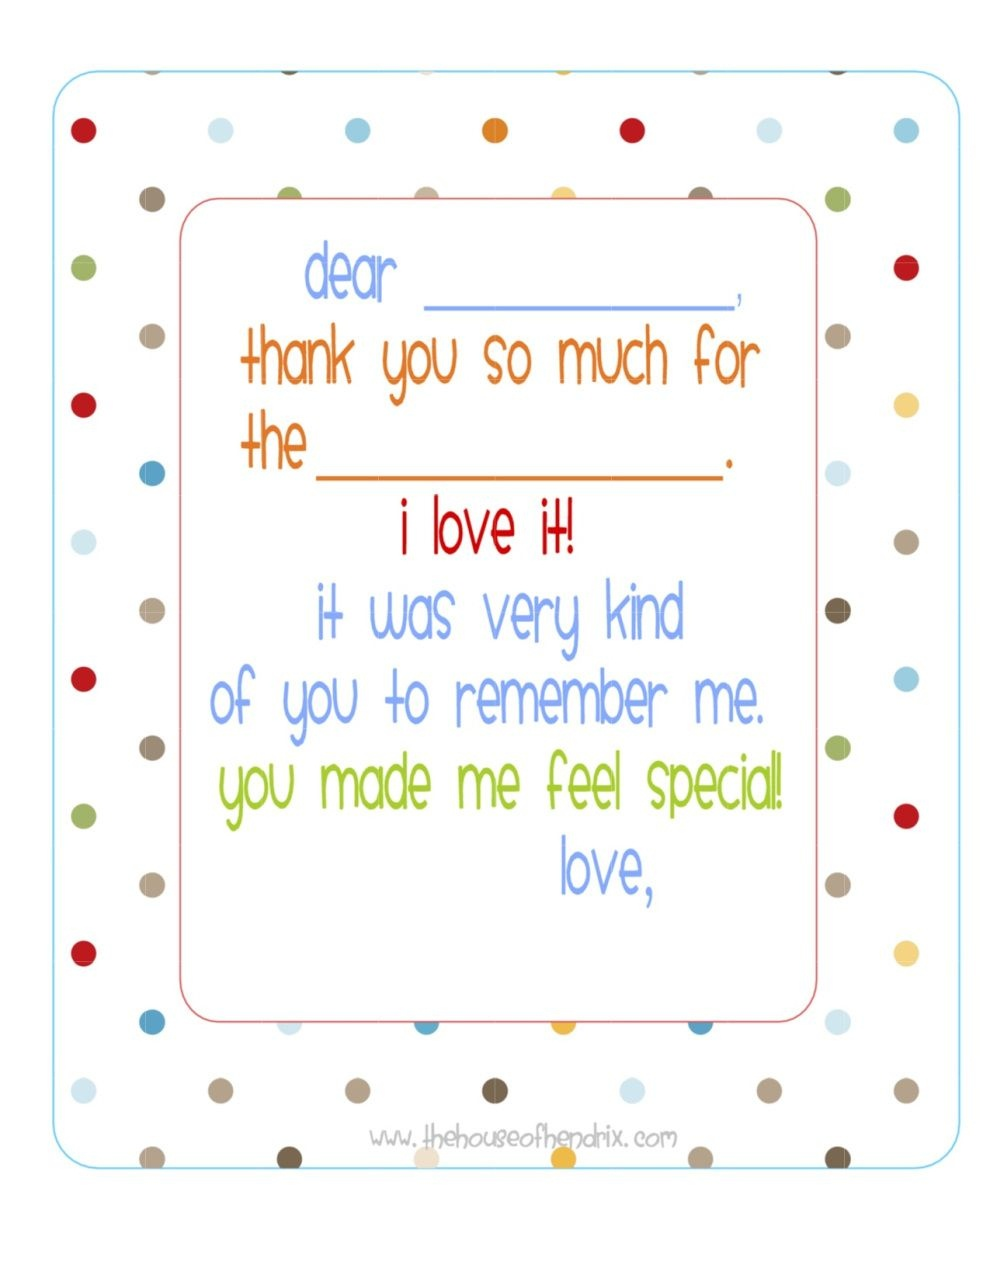 Free} Printable Fill In The Blank Thank You Note (Polka Dots) | Misc - Fill In The Blank Thank You Cards Printable Free